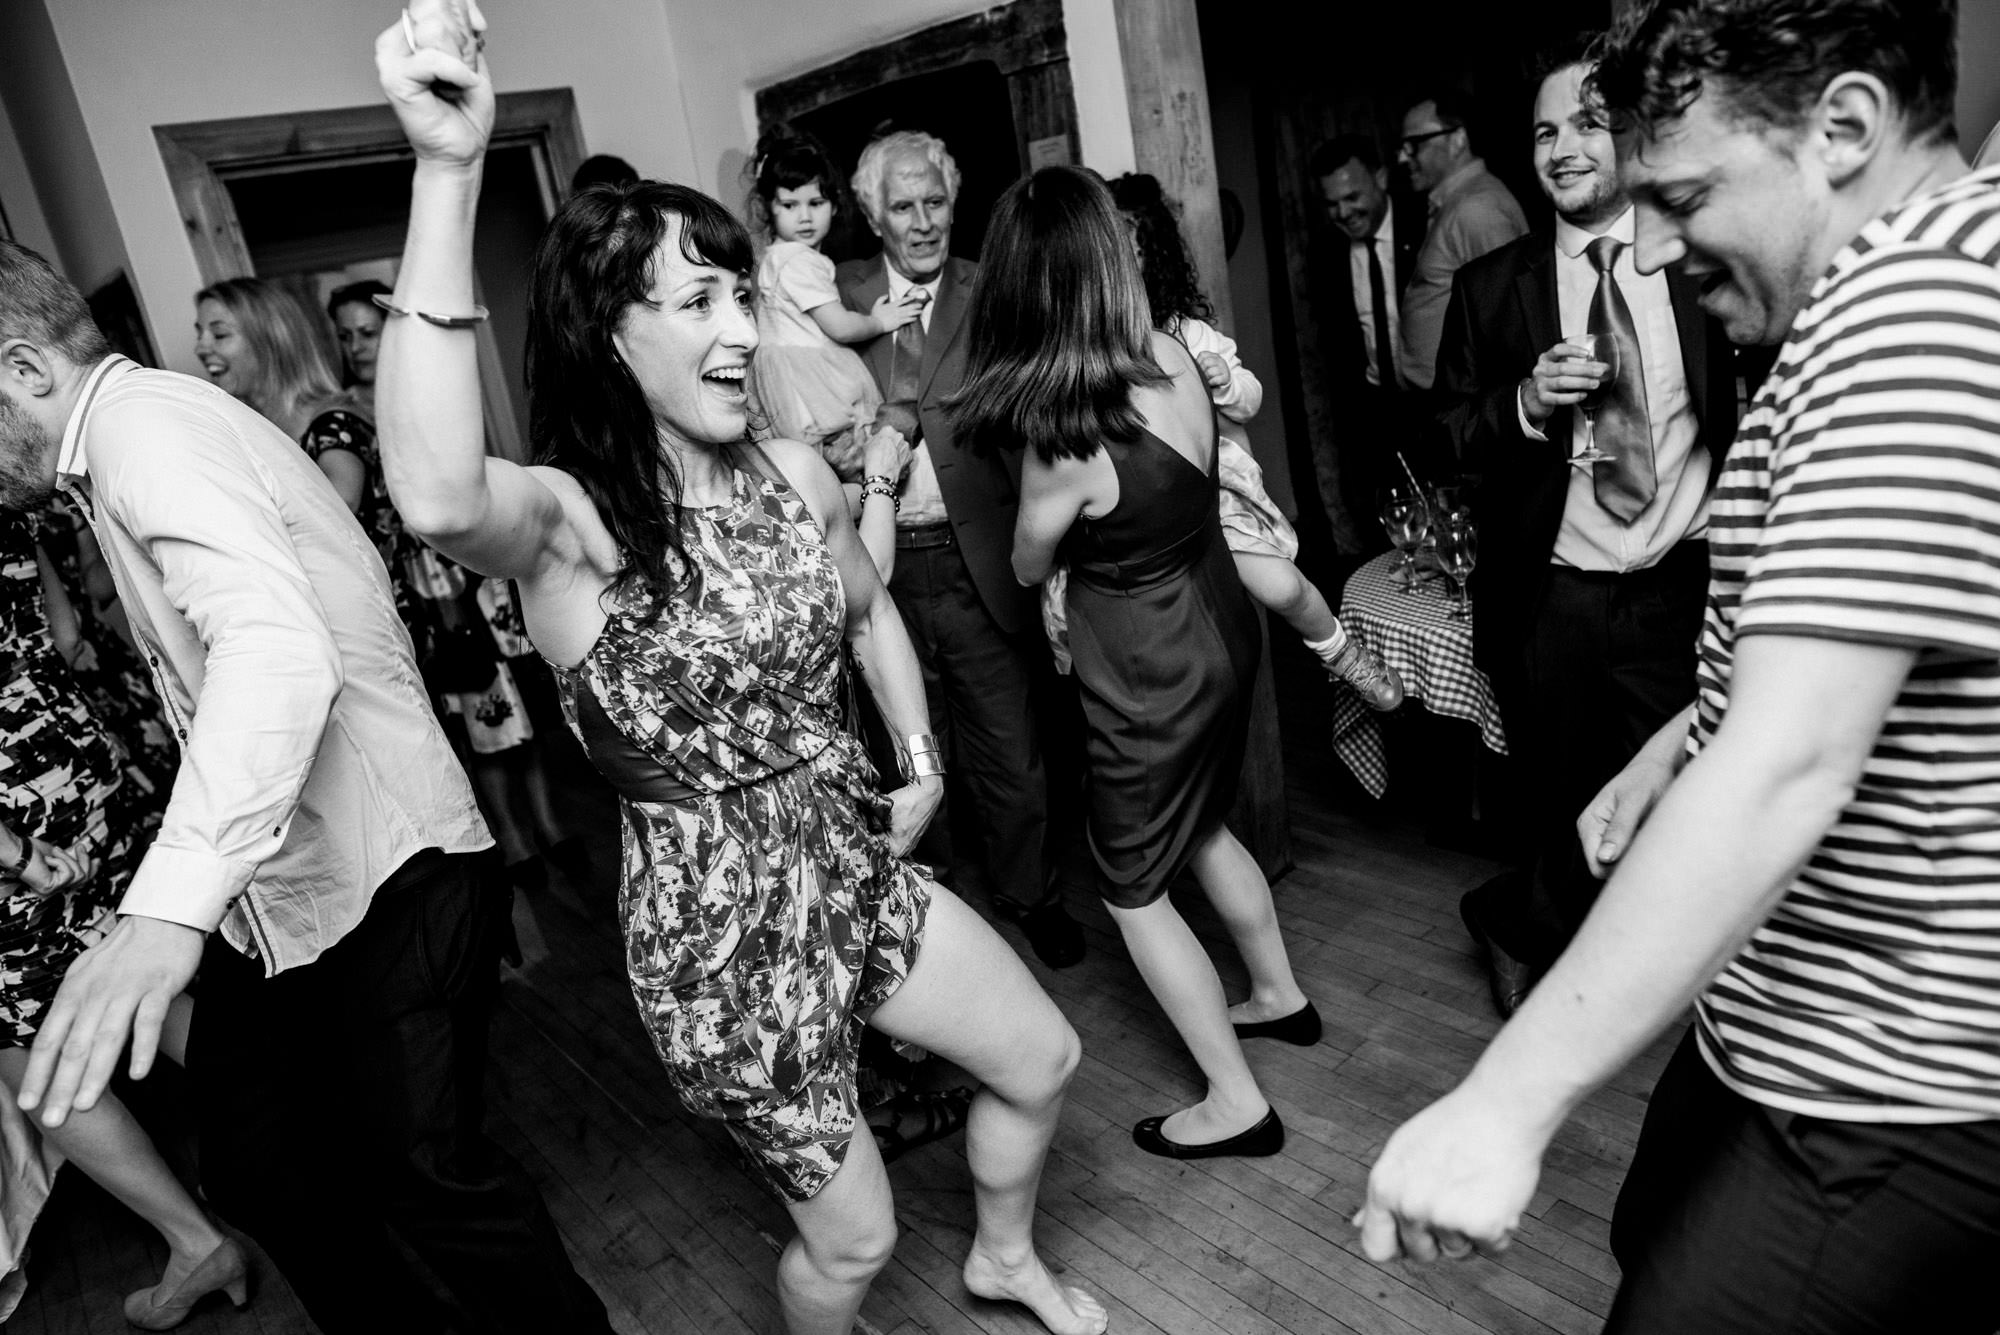 Dancing at Huntstile organic farm wedding